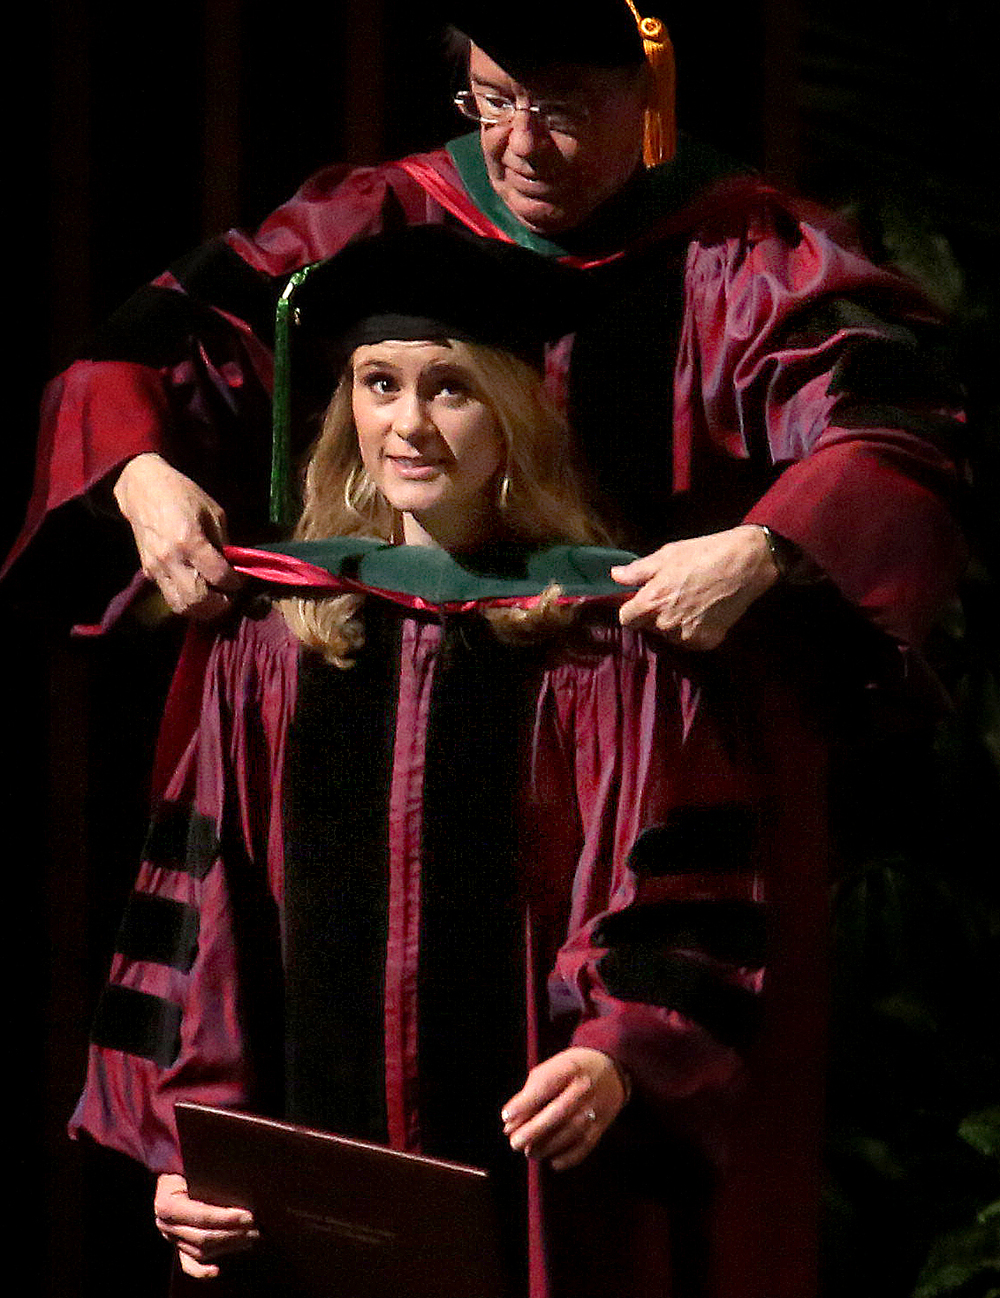 Ashley Norton of Springfield is hooded by J. Kevin Dorsey, former SIU Dean and Provost, during the ceremony Saturday afternoon. Norton will be doing her residency in Radiology-Diagnostic at the Medical College of Wisconsin Affiliated Hospitals in Milwaukee. David Spencer/The State Journal-Register